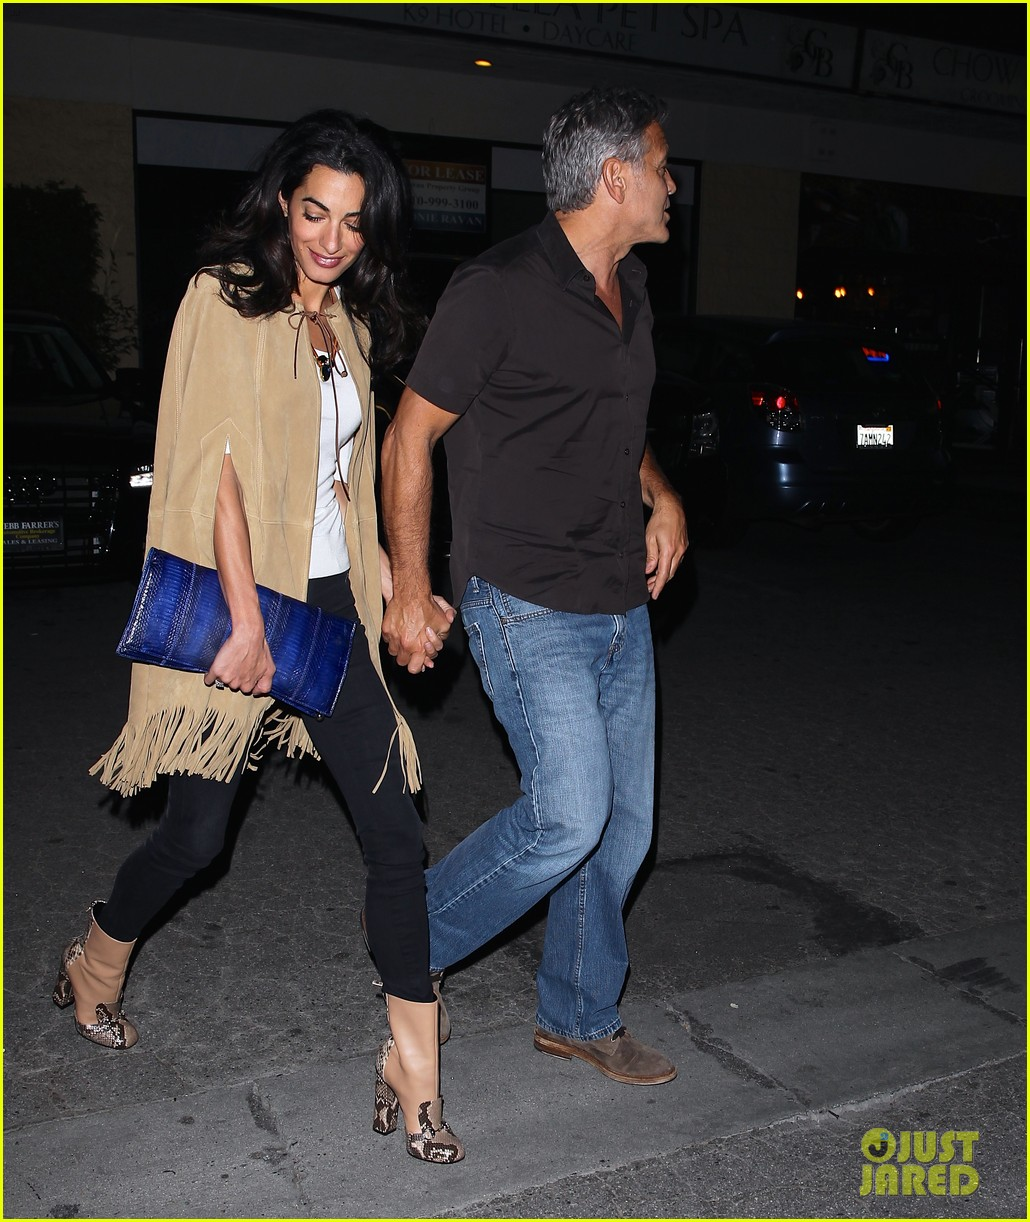 George and Amal Clooney Their First Valentine's Day George-clooney-amal-valentines-day-08